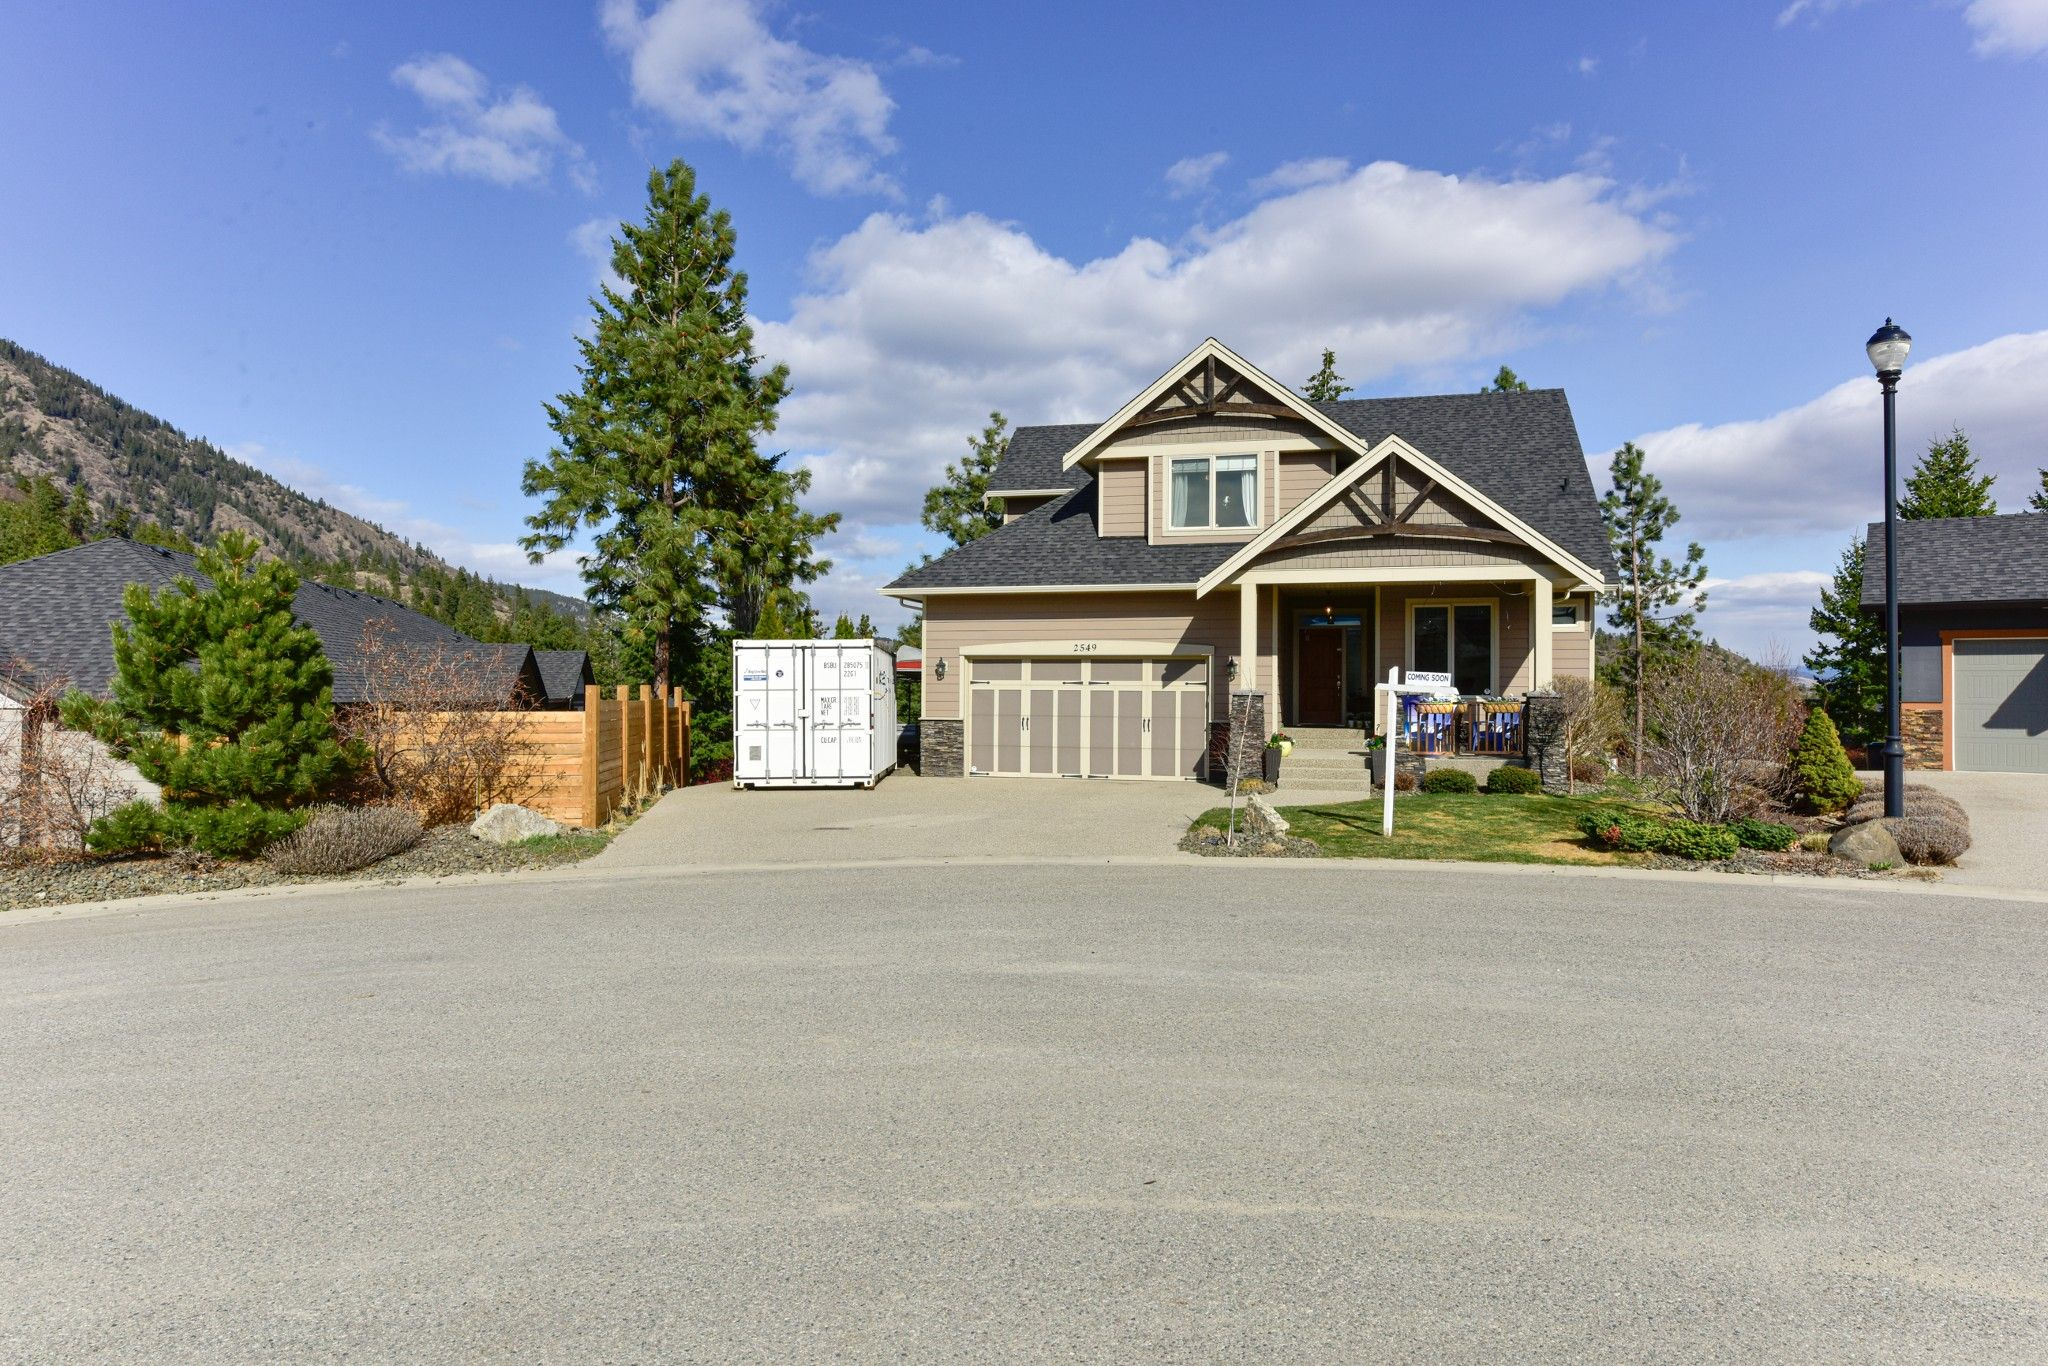 Main Photo: 2549 Pebble Place in West Kelowna: Shannon  Lake House for sale (Central  Okanagan)  : MLS®# 10228762